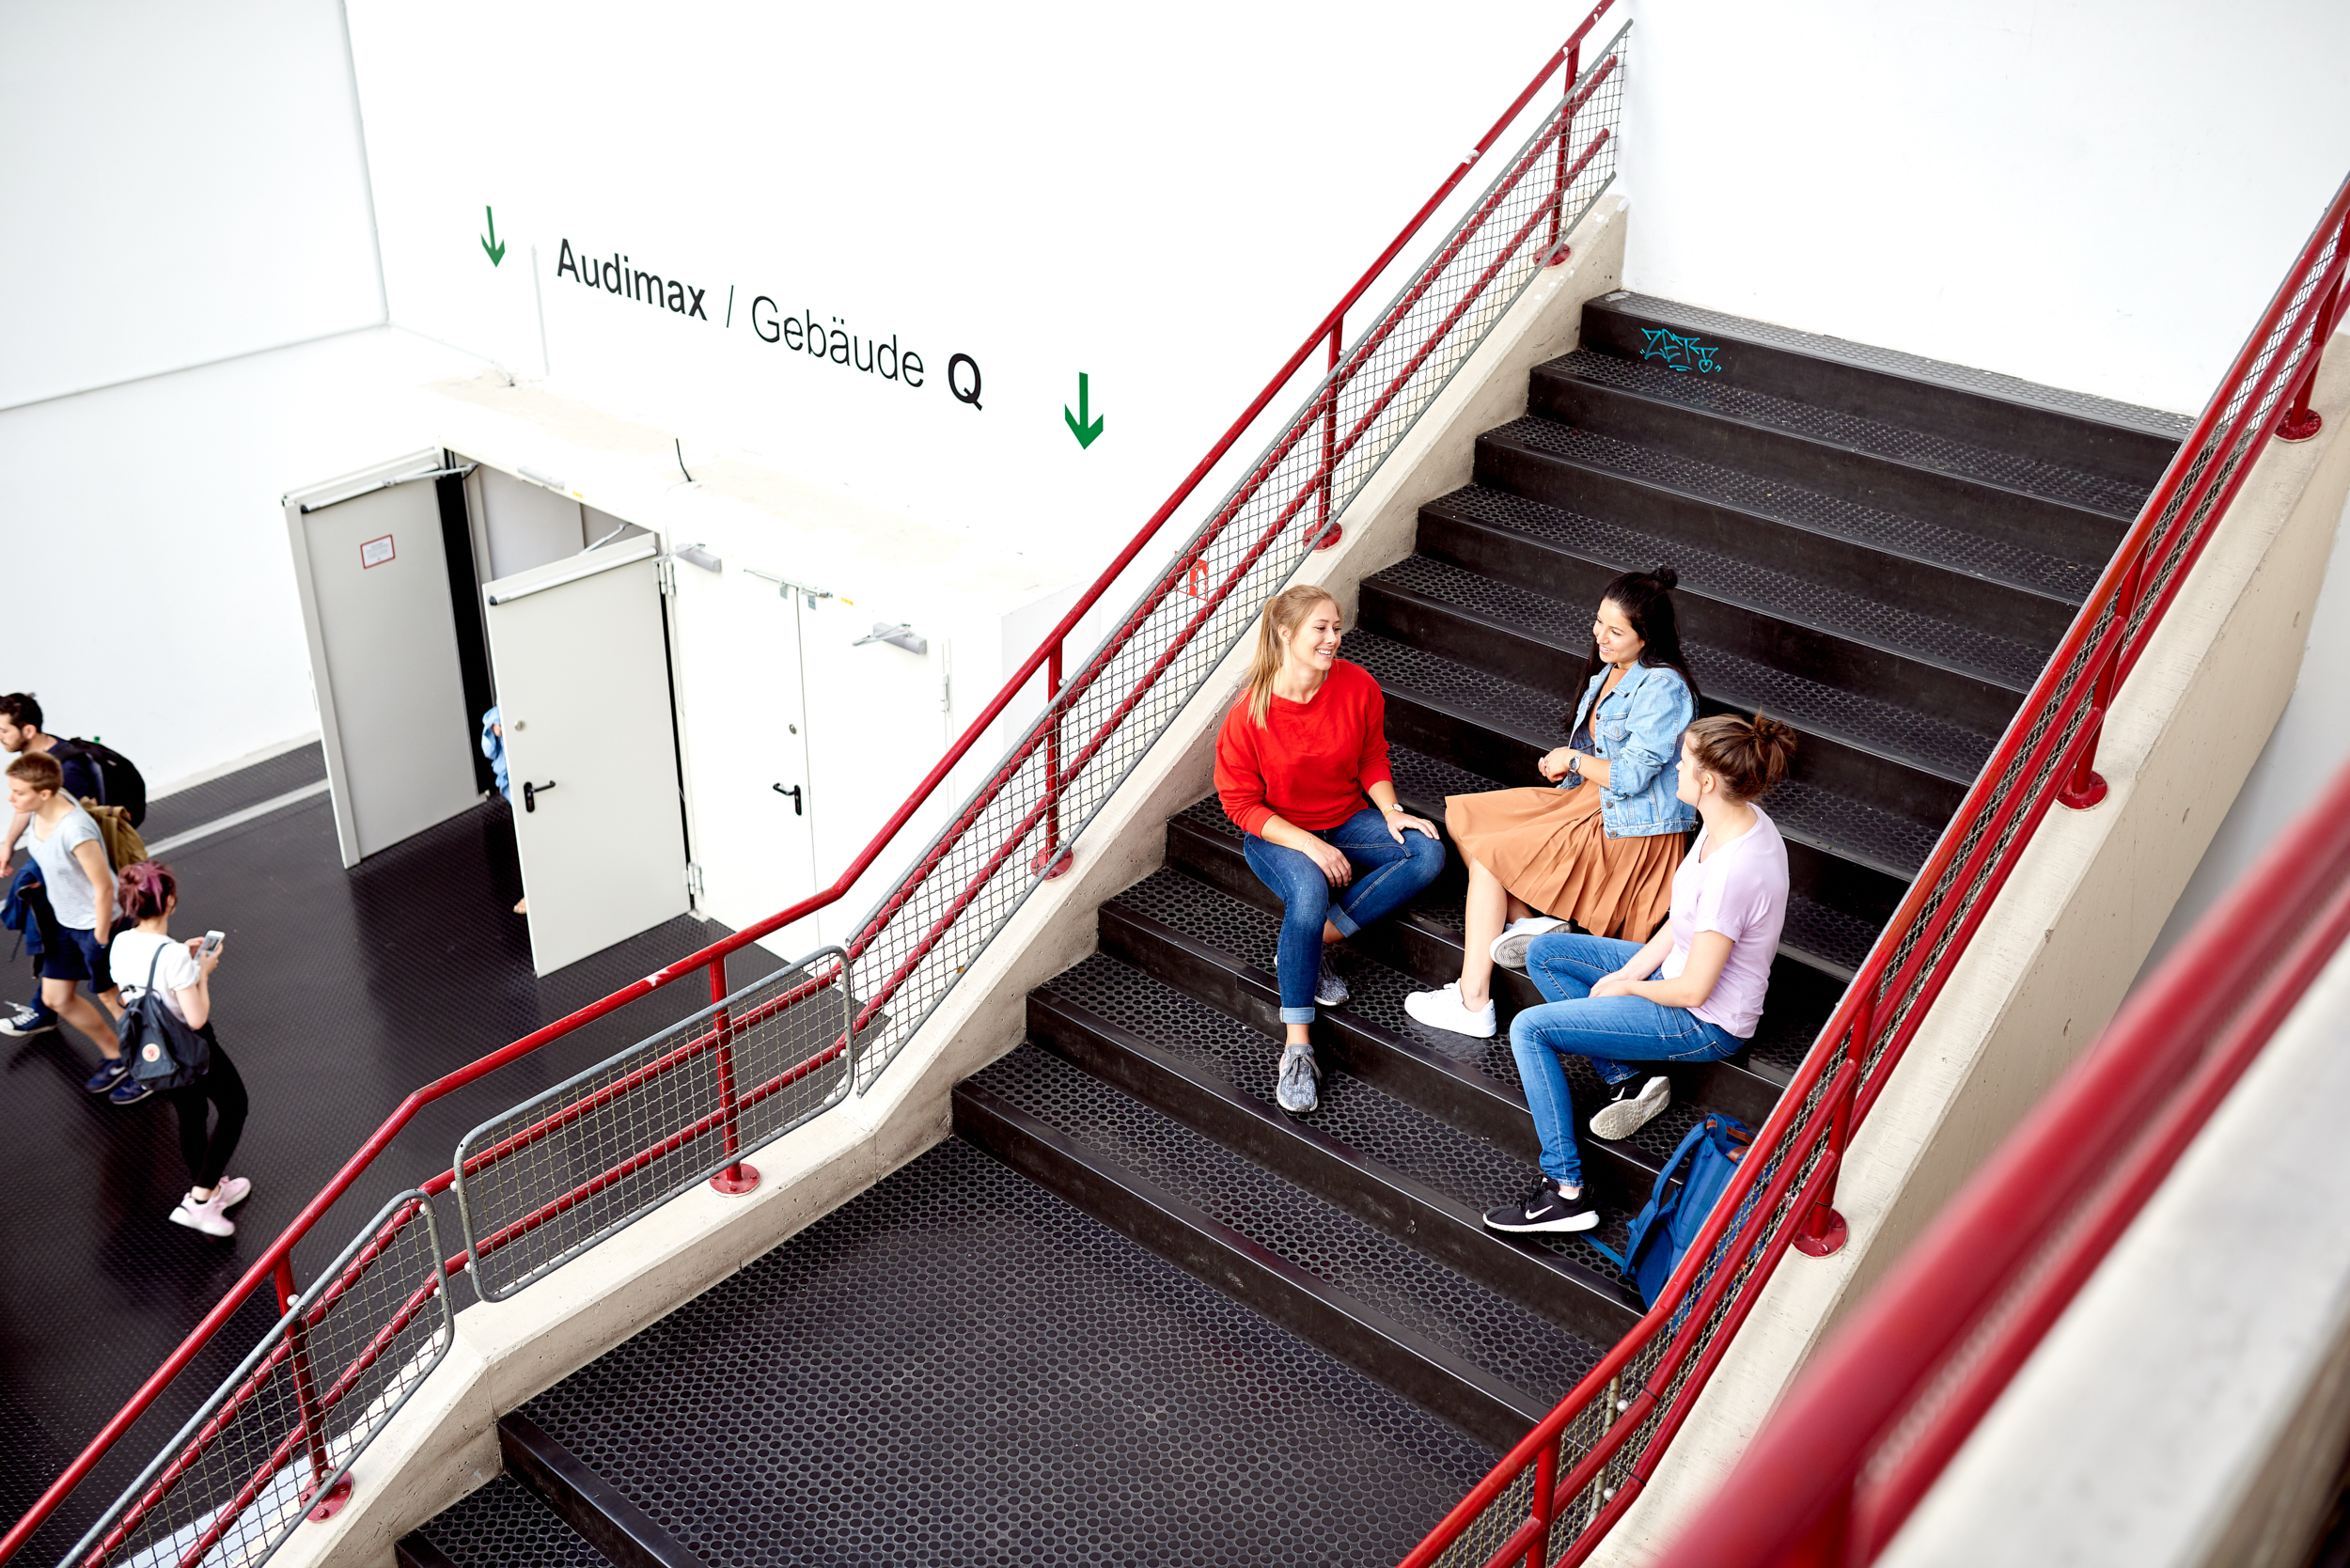 Students sitting on stairs next to the Audimax